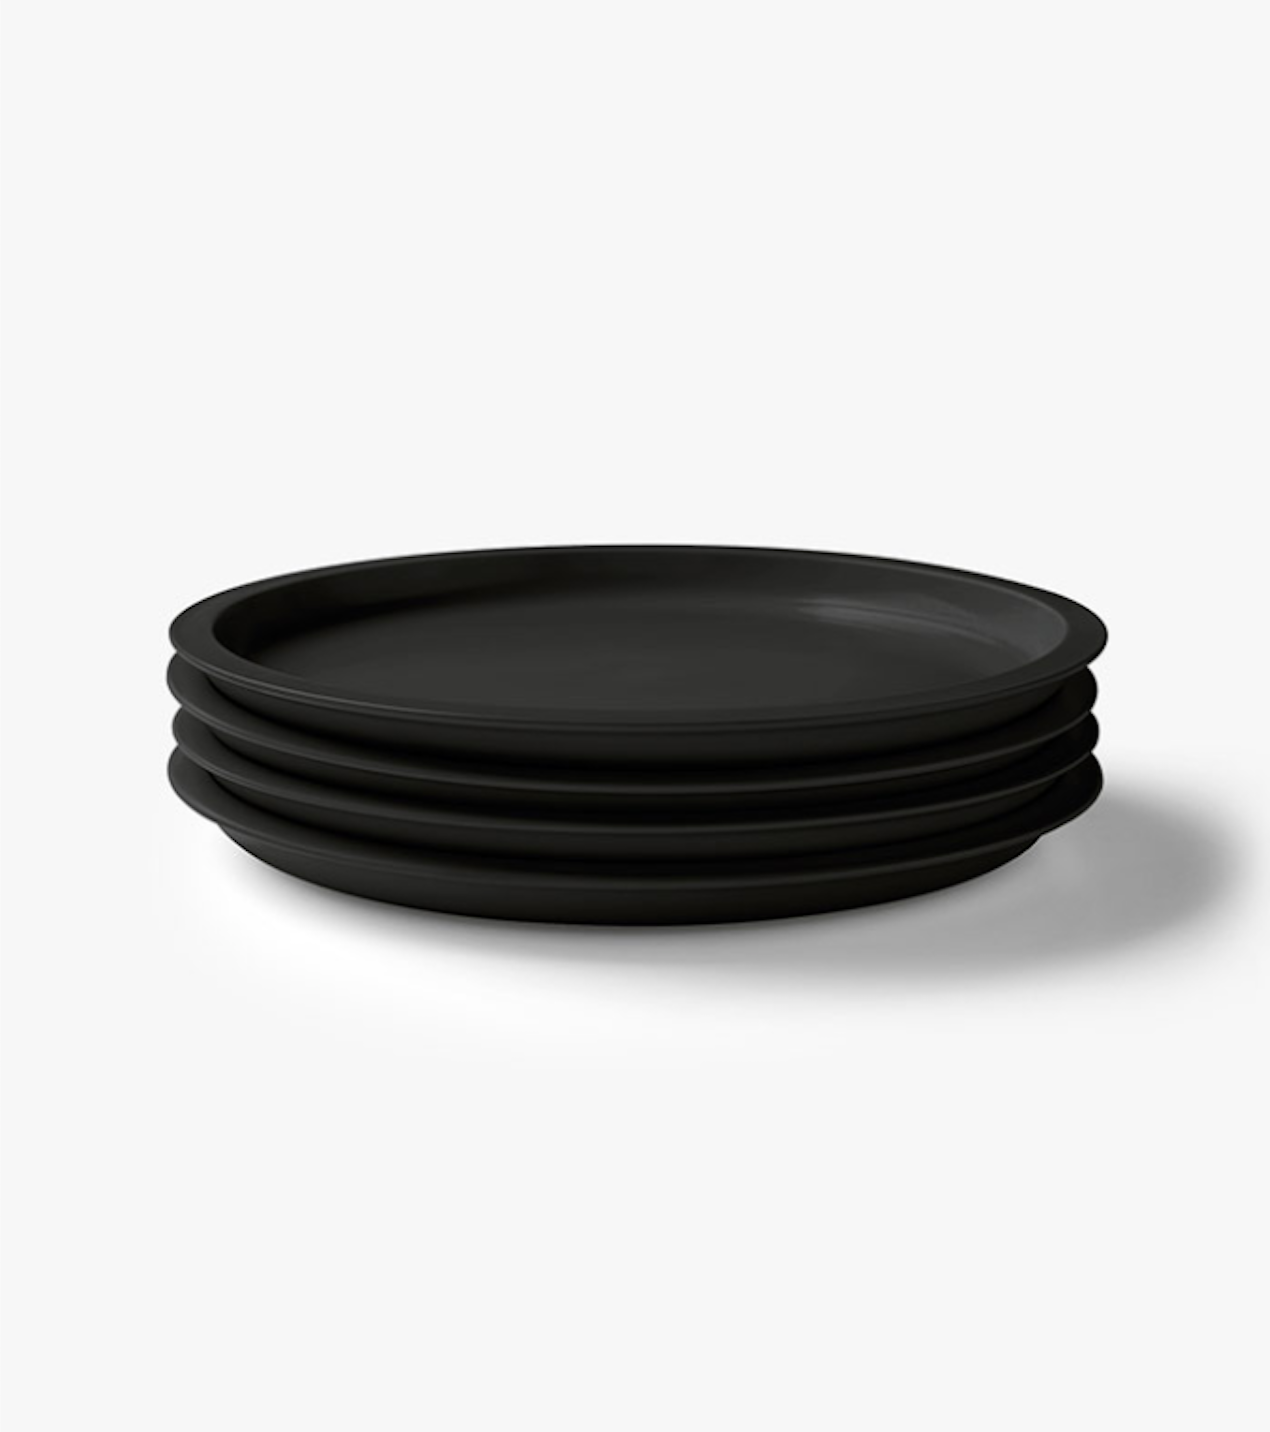 Black Kali Dinner Plate from Aura Home-kali-dinner-plate & 10 Easy Pieces: Dramatic Black Dinnerware - Remodelista